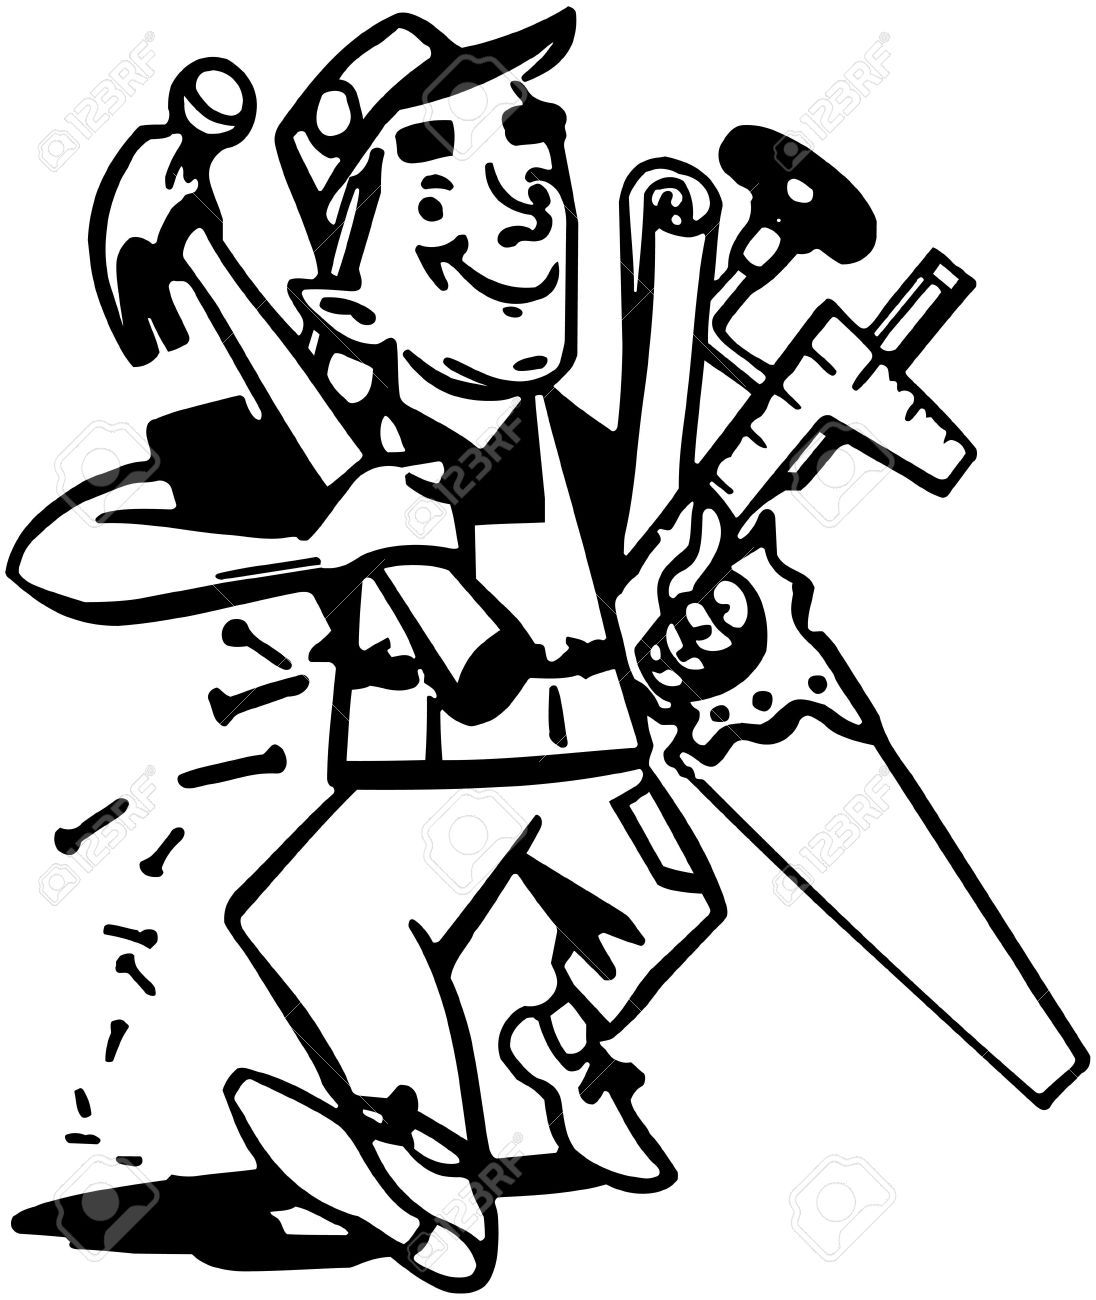 Google search modern heritage. Carpenter clipart black and white